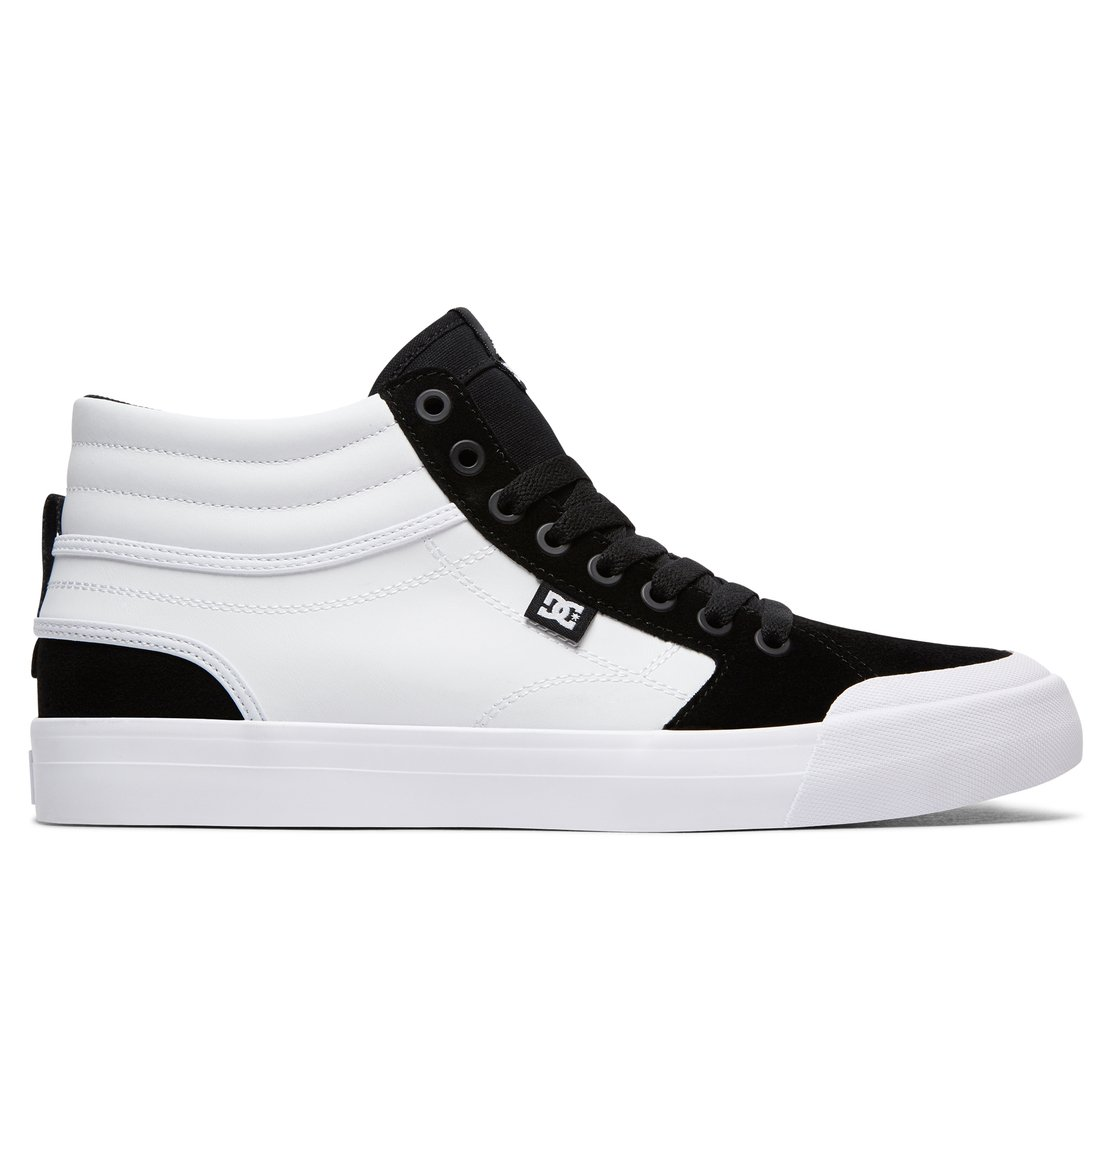 Chaussures Homme DC EVAN SMITH HI white 64voRl